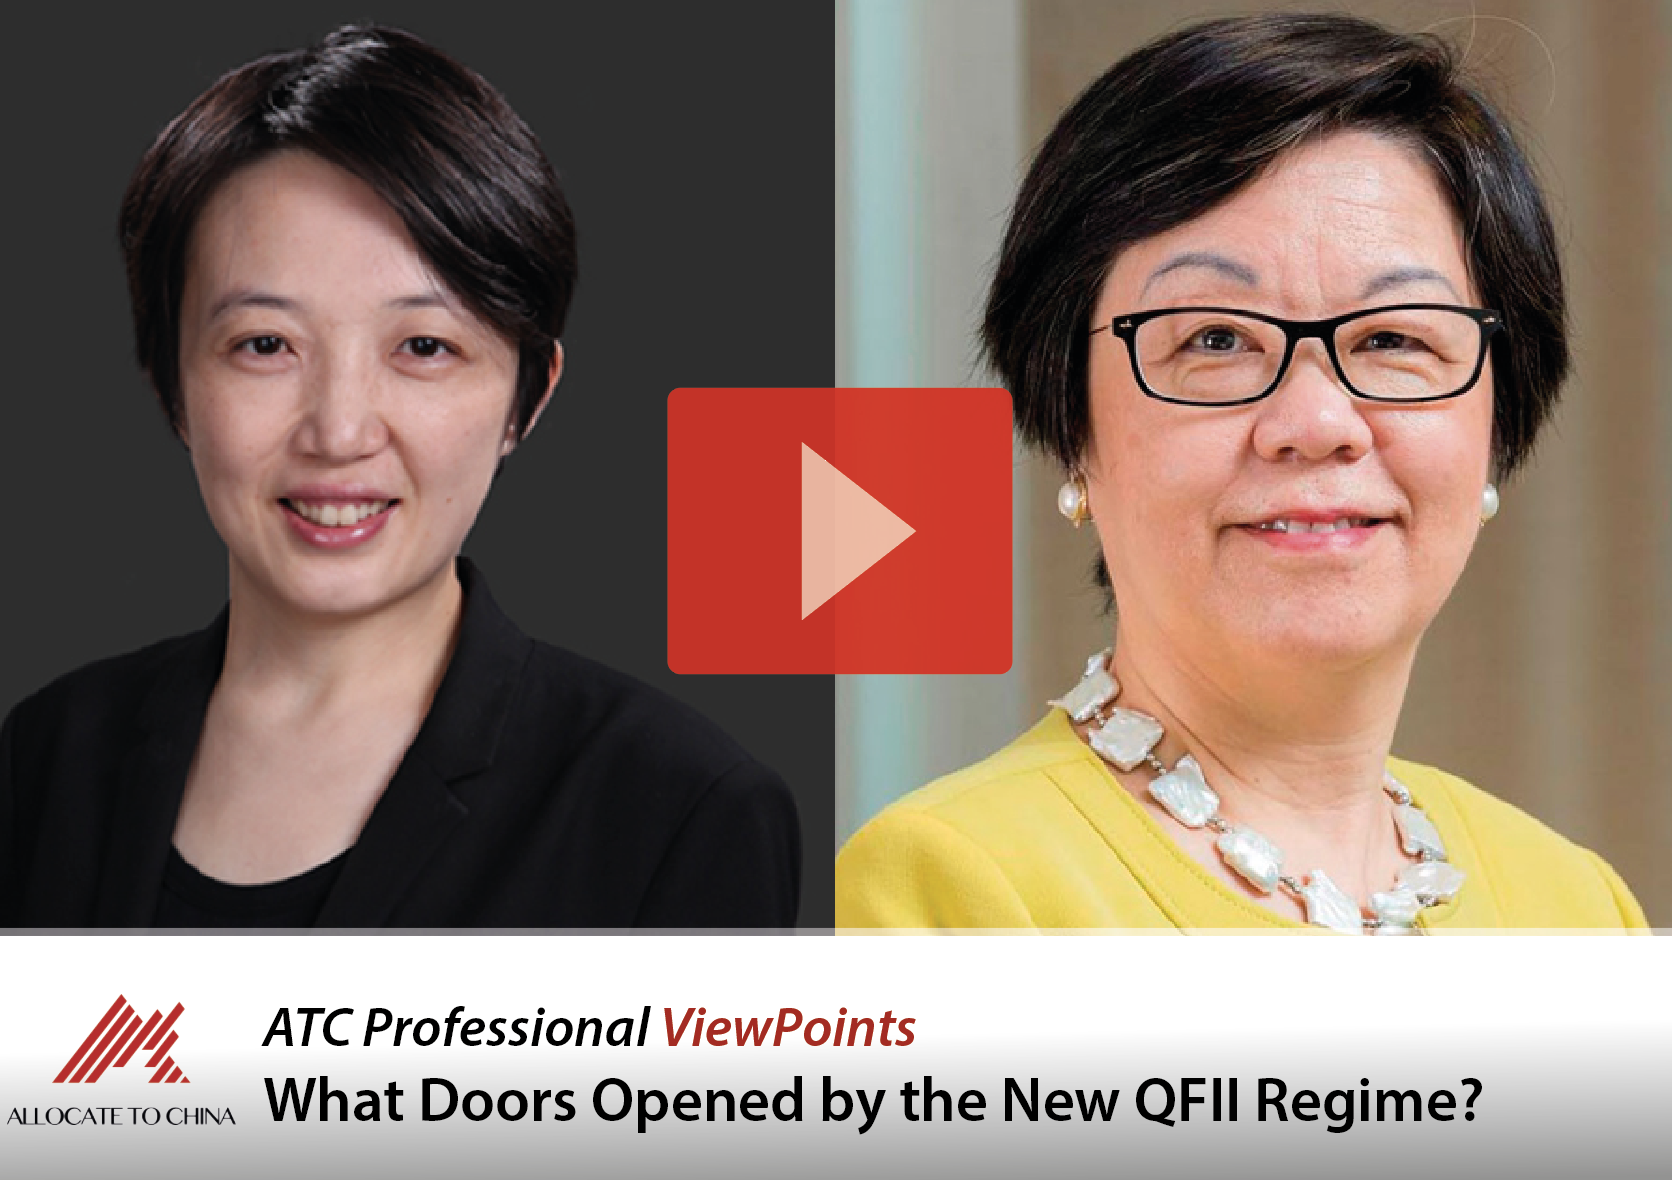 What Doors Opened by the New QFII Regime?